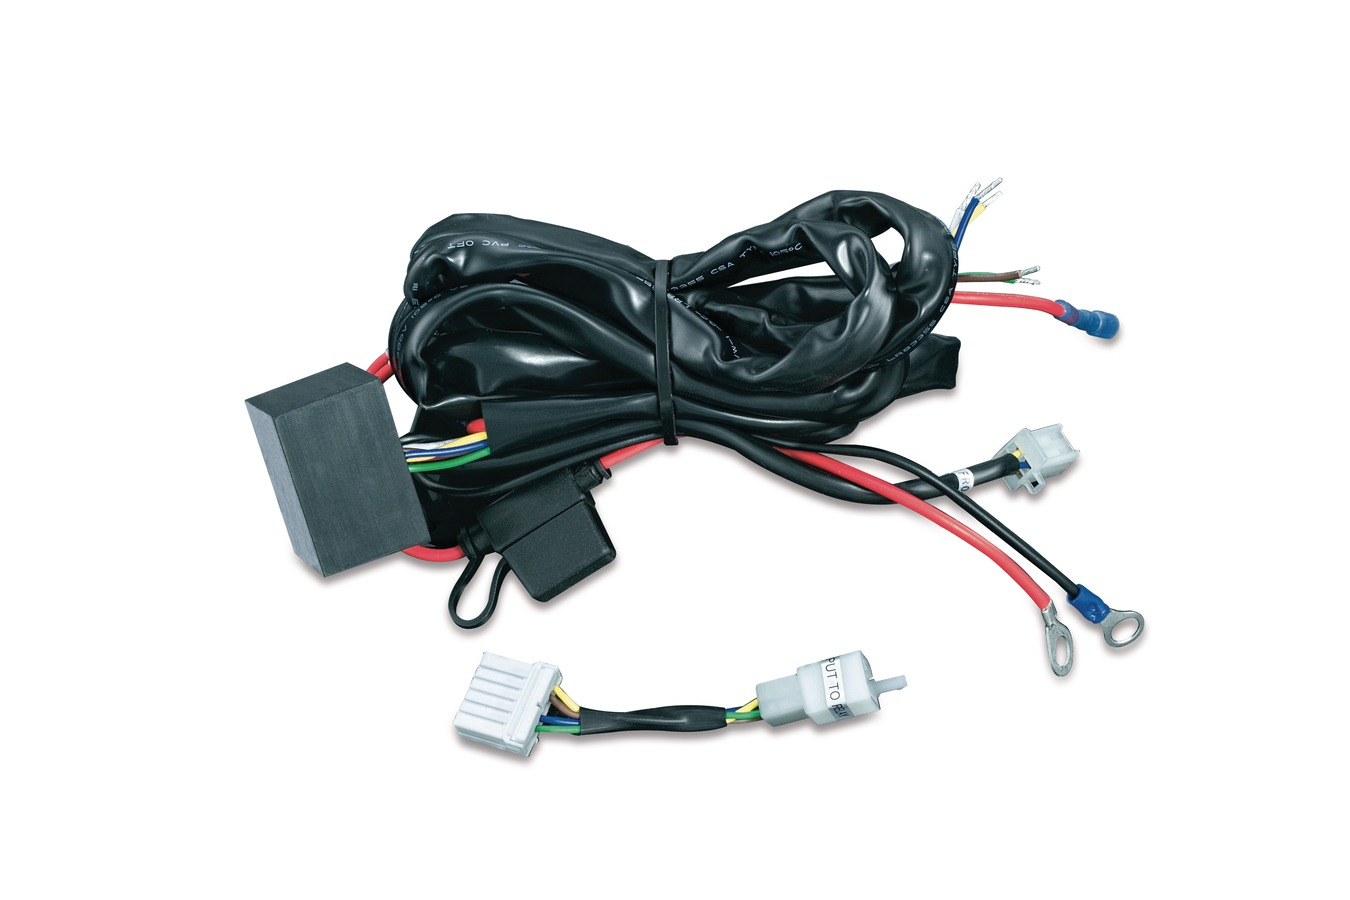 Trailer Wiring Harnesses   Trailer Hitches & Wiring   Touring - Trailer Wiring Diagram Za